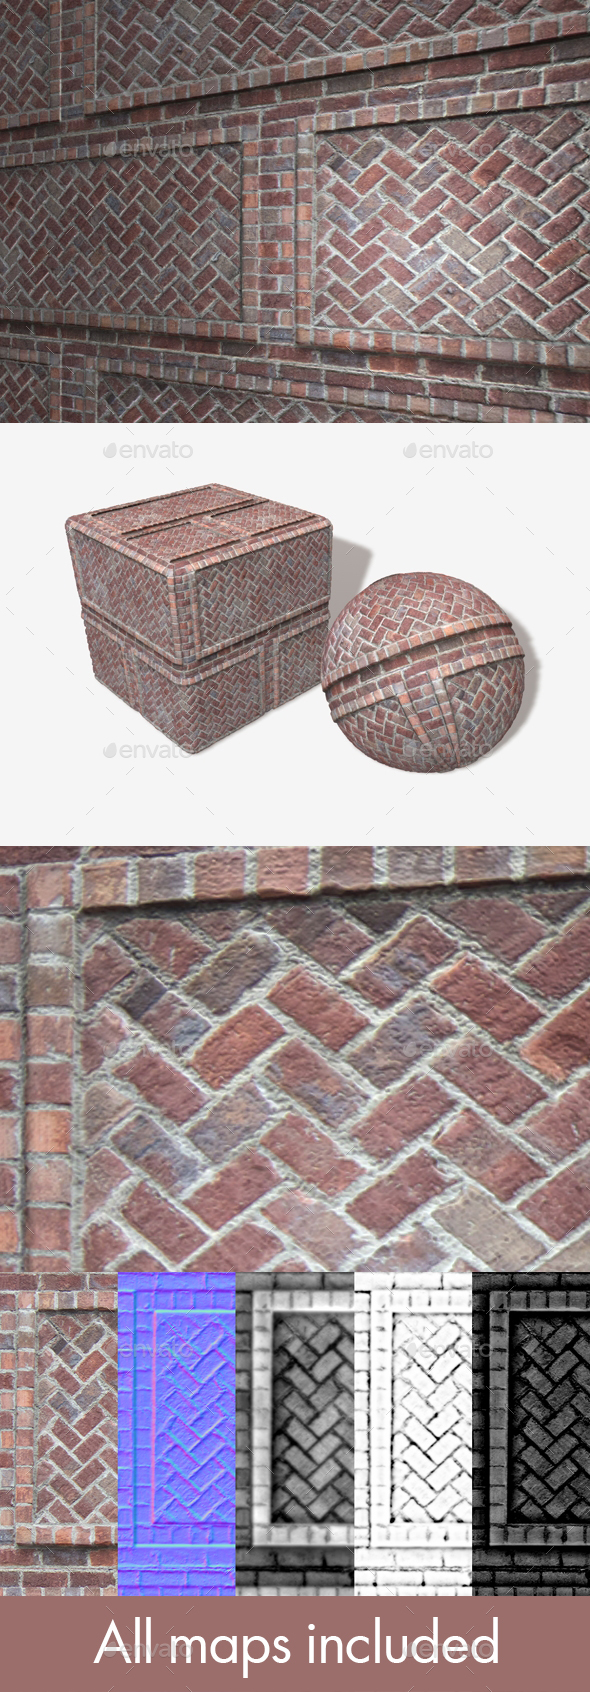 Brick Decoration Seamless Texture - 3DOcean Item for Sale